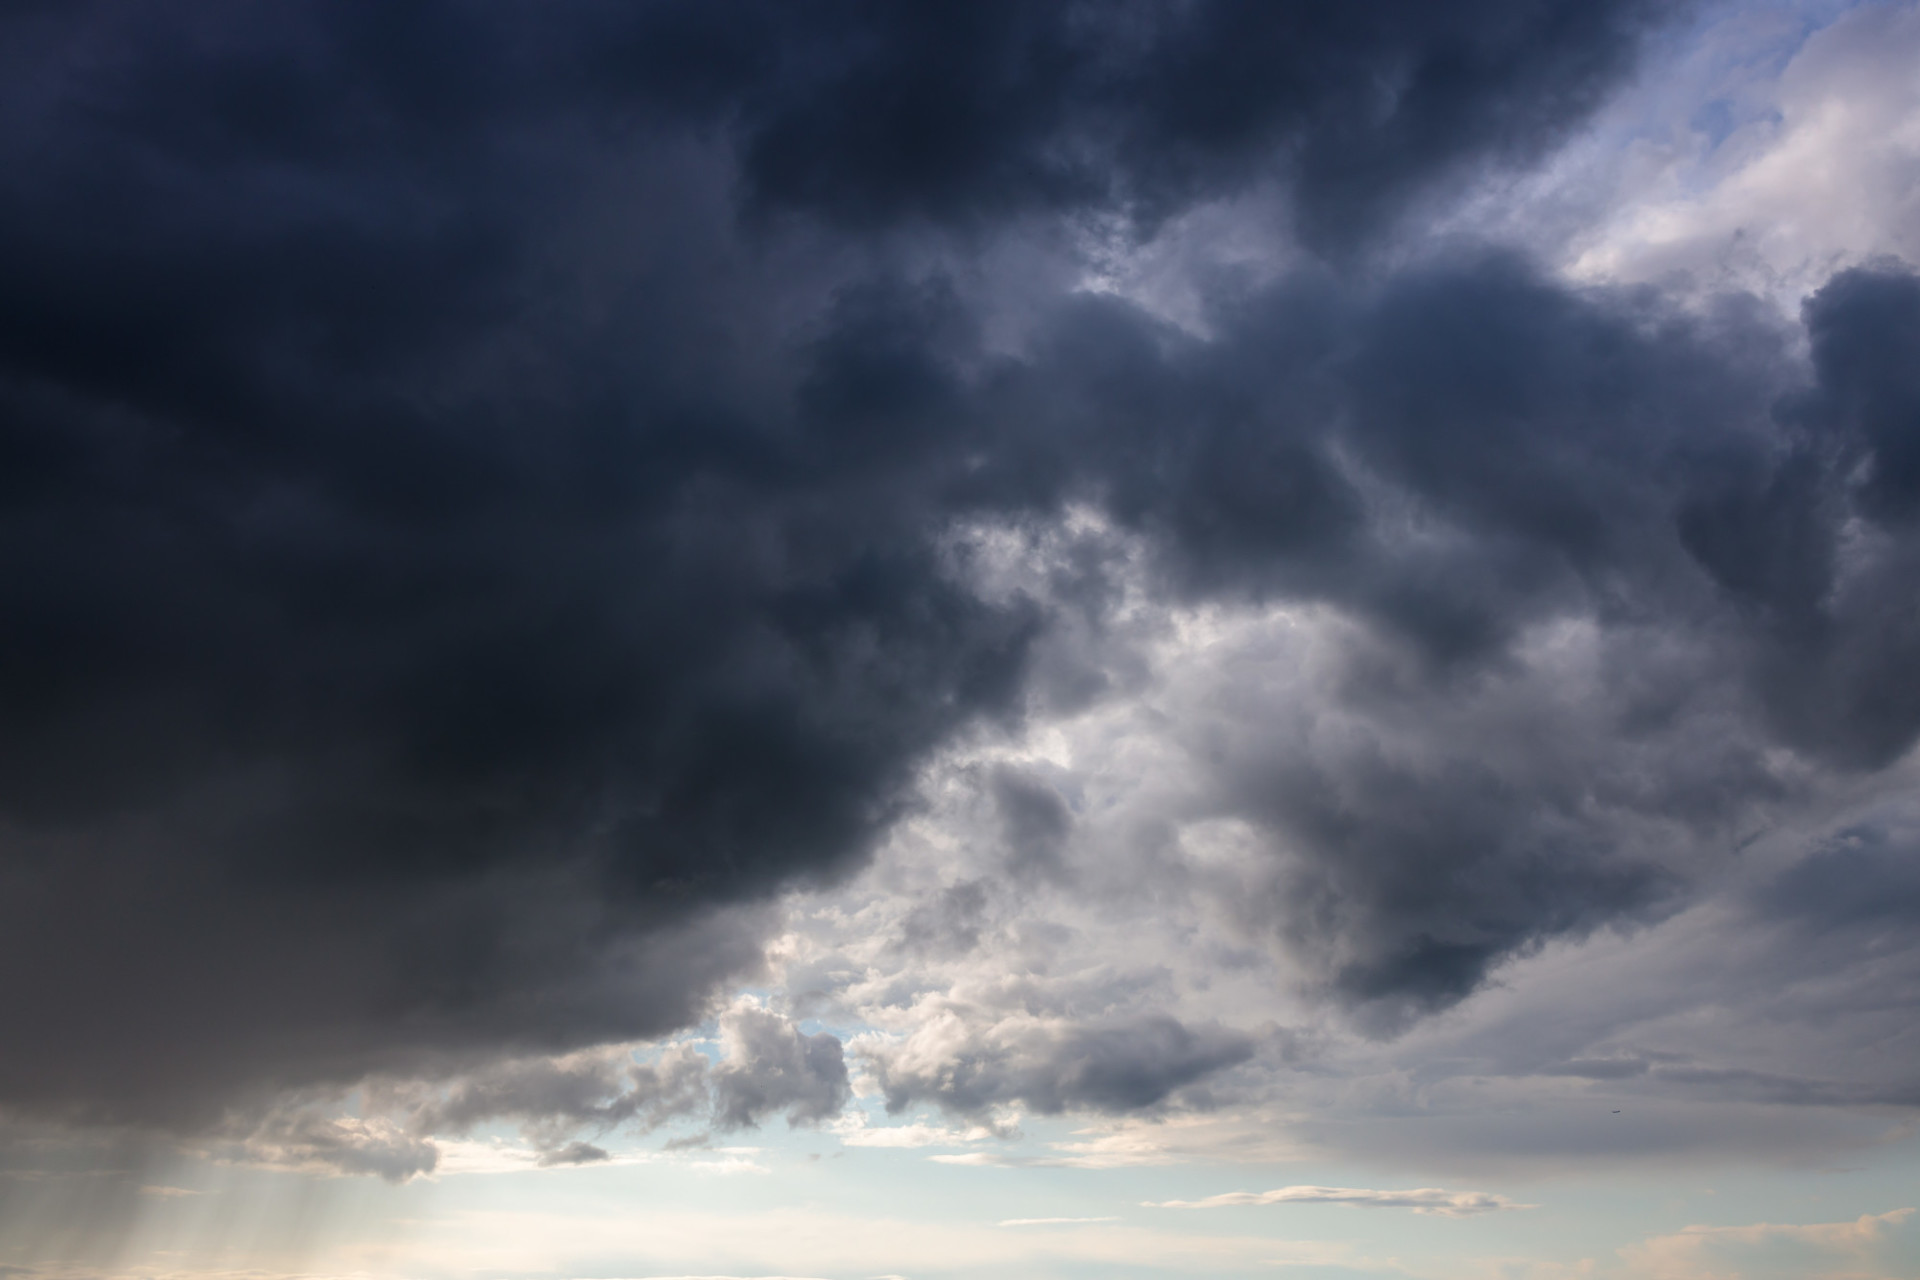 Stormy cloudy sky background for sky replacement